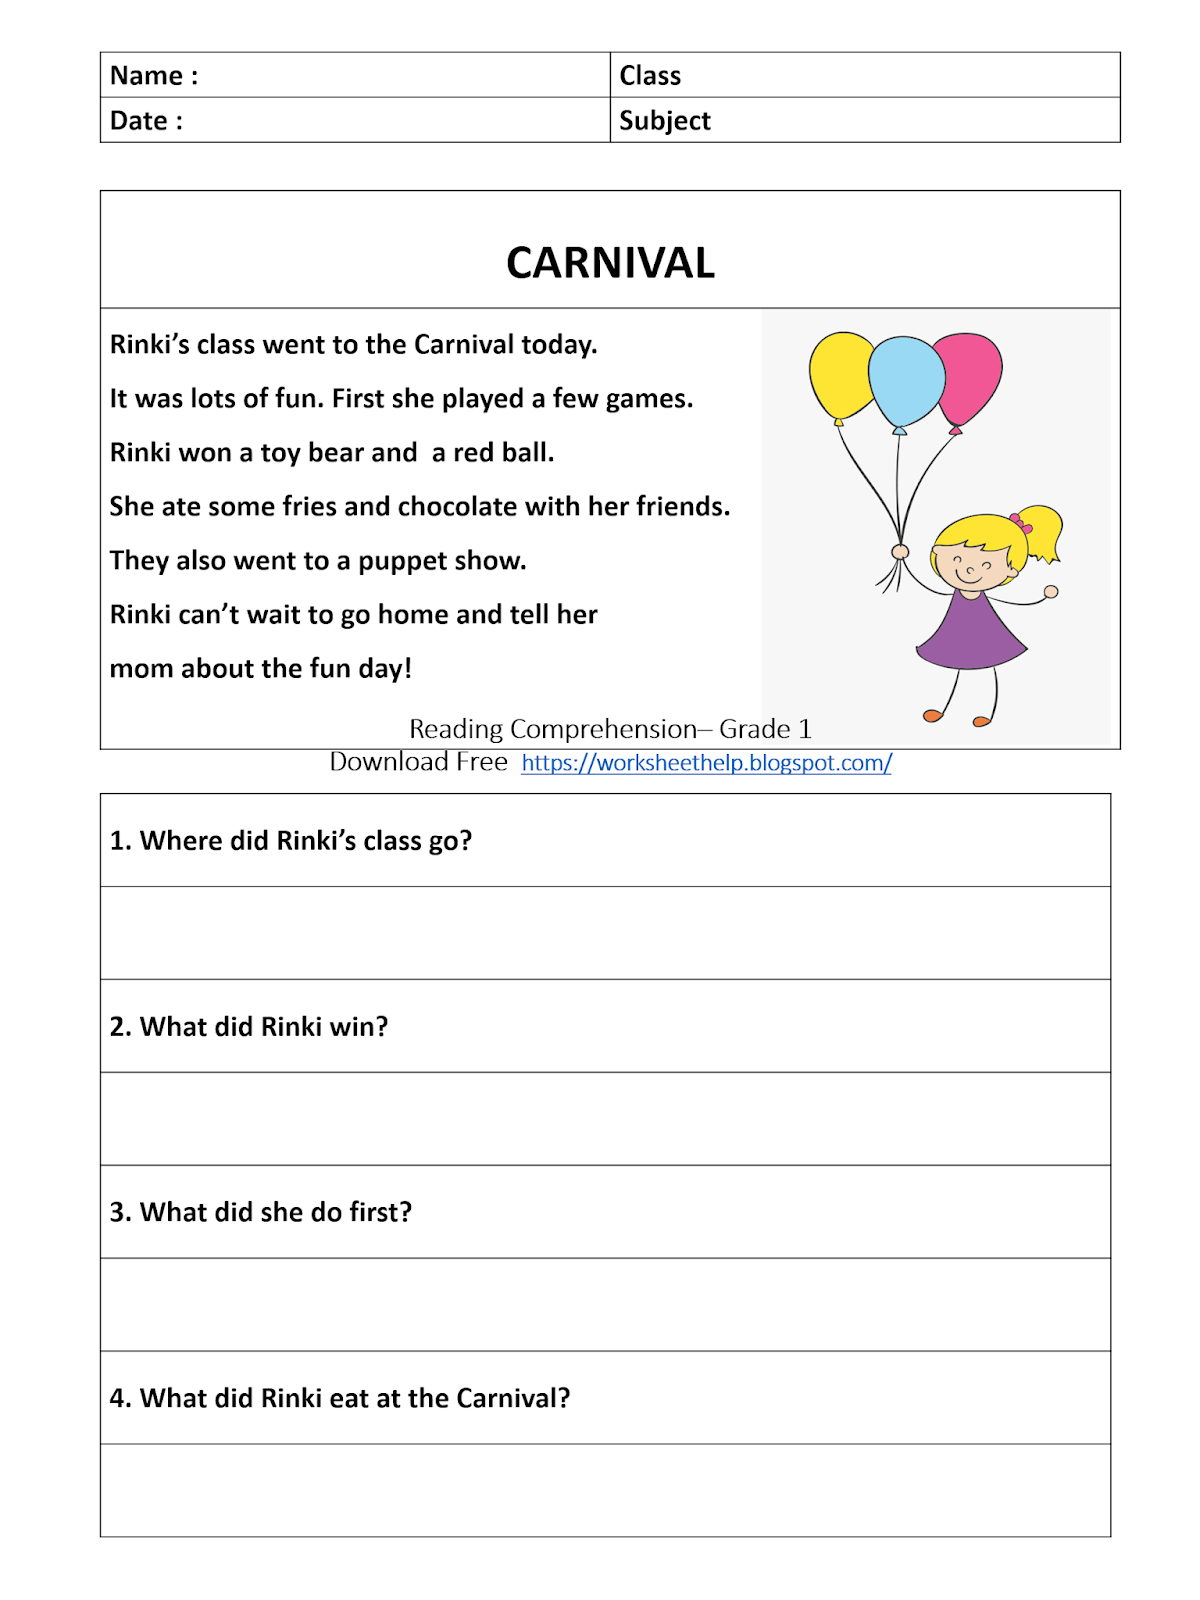 small resolution of Clipart Creationz: Reading Comprehension Worksheet - Grade 1 - Carnival